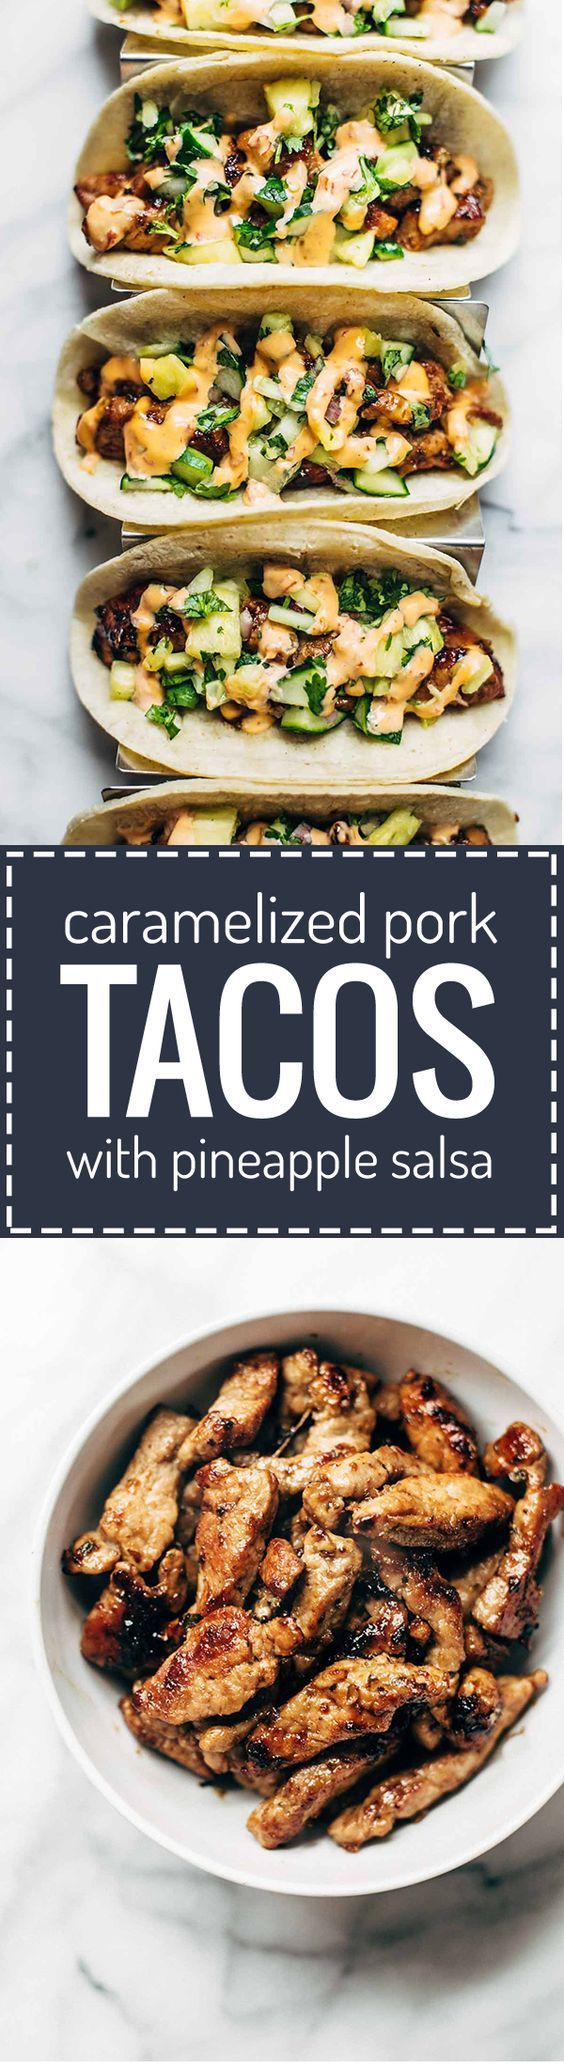 Caramelized Pork Tacos with Pineapple Salsa and Chili Sauce